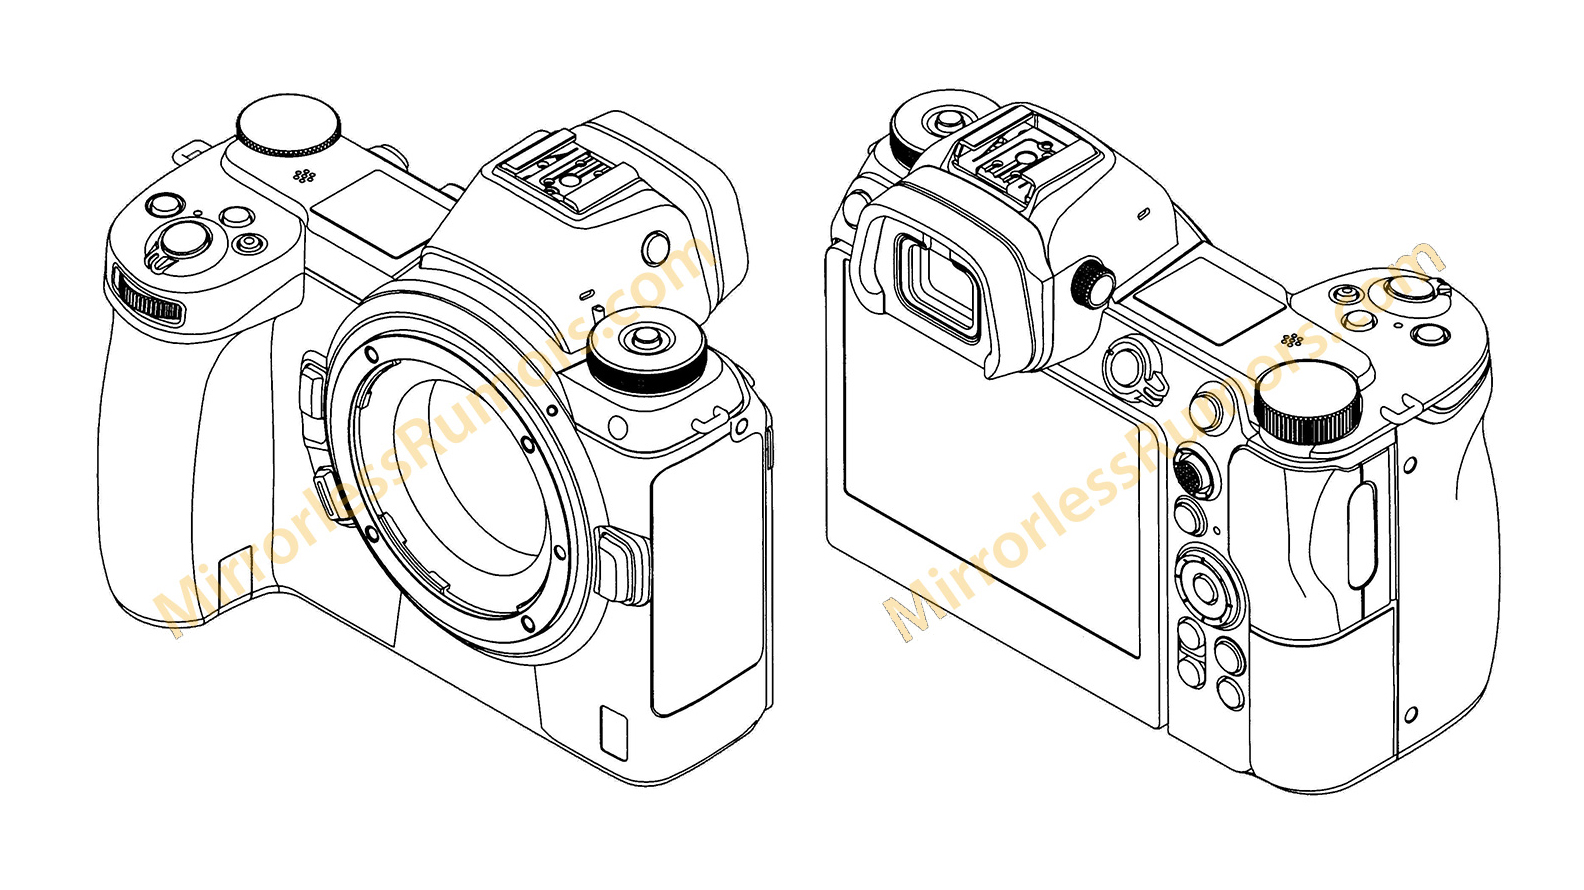 New Nikon Z camera leaked: is this the 61MP Nikon Z8 or the pro Nikon Z9? | Digital Camera World